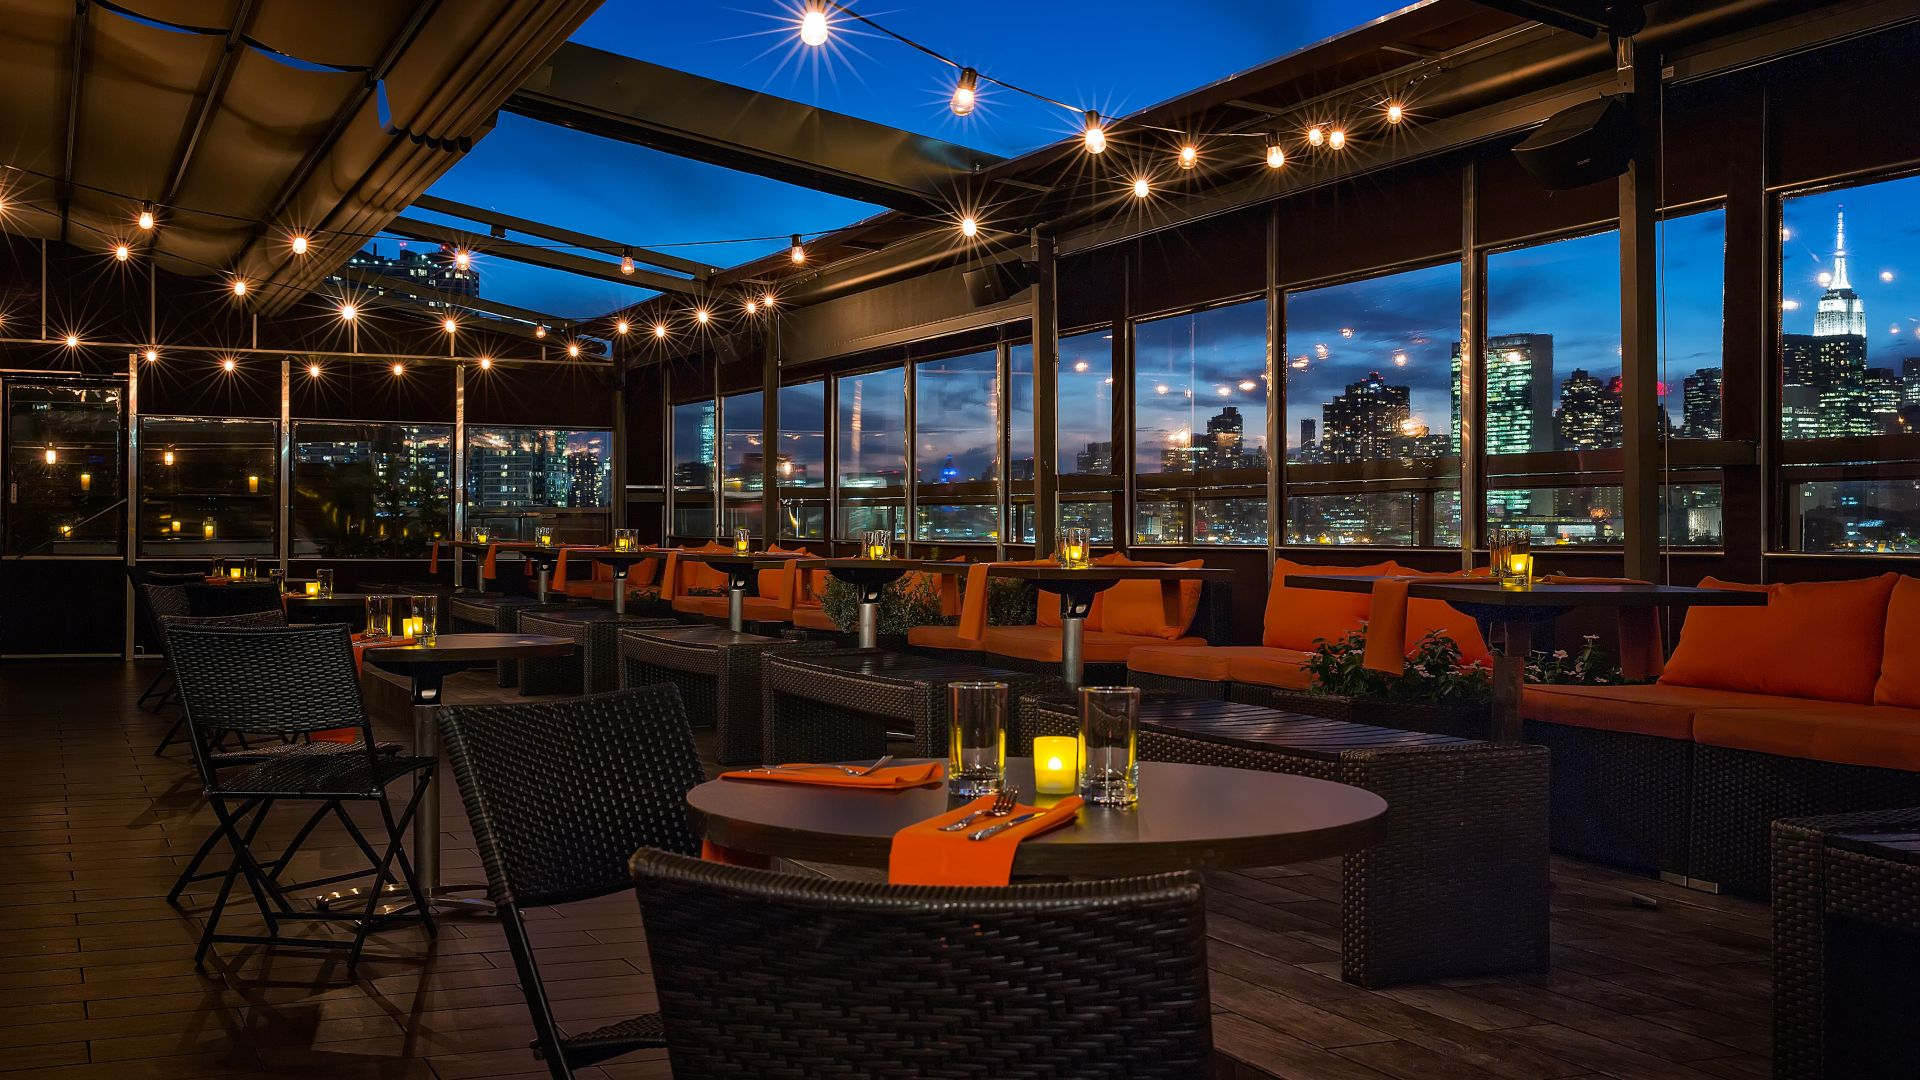 Penthouse 808 | Eat, Drink & Dance in Our Enclosed & Heated Rooftop Restaurant